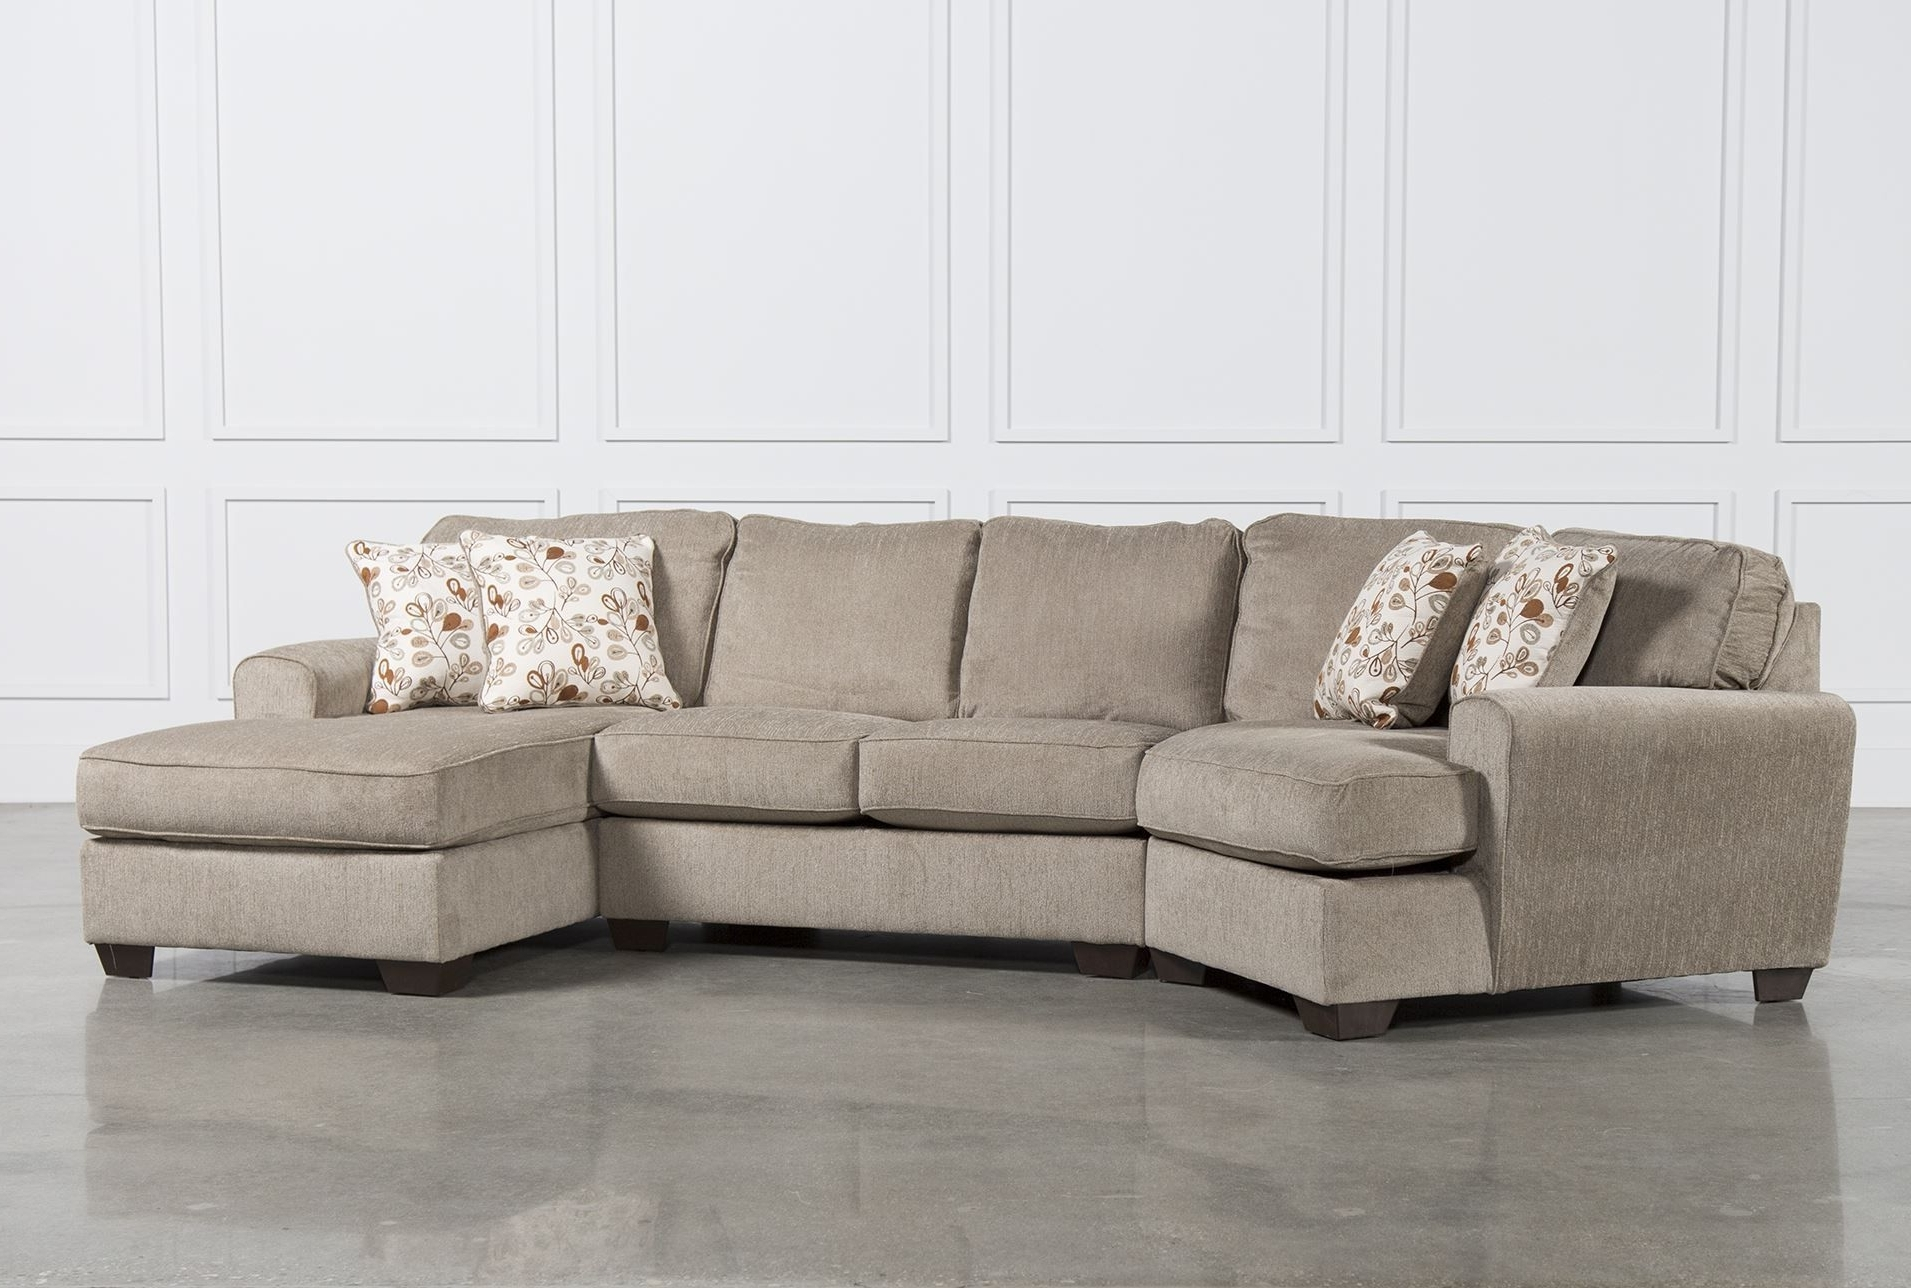 Mon Inside Fashionable 3 Piece Sectional Sofas With Chaise (View 6 of 15)